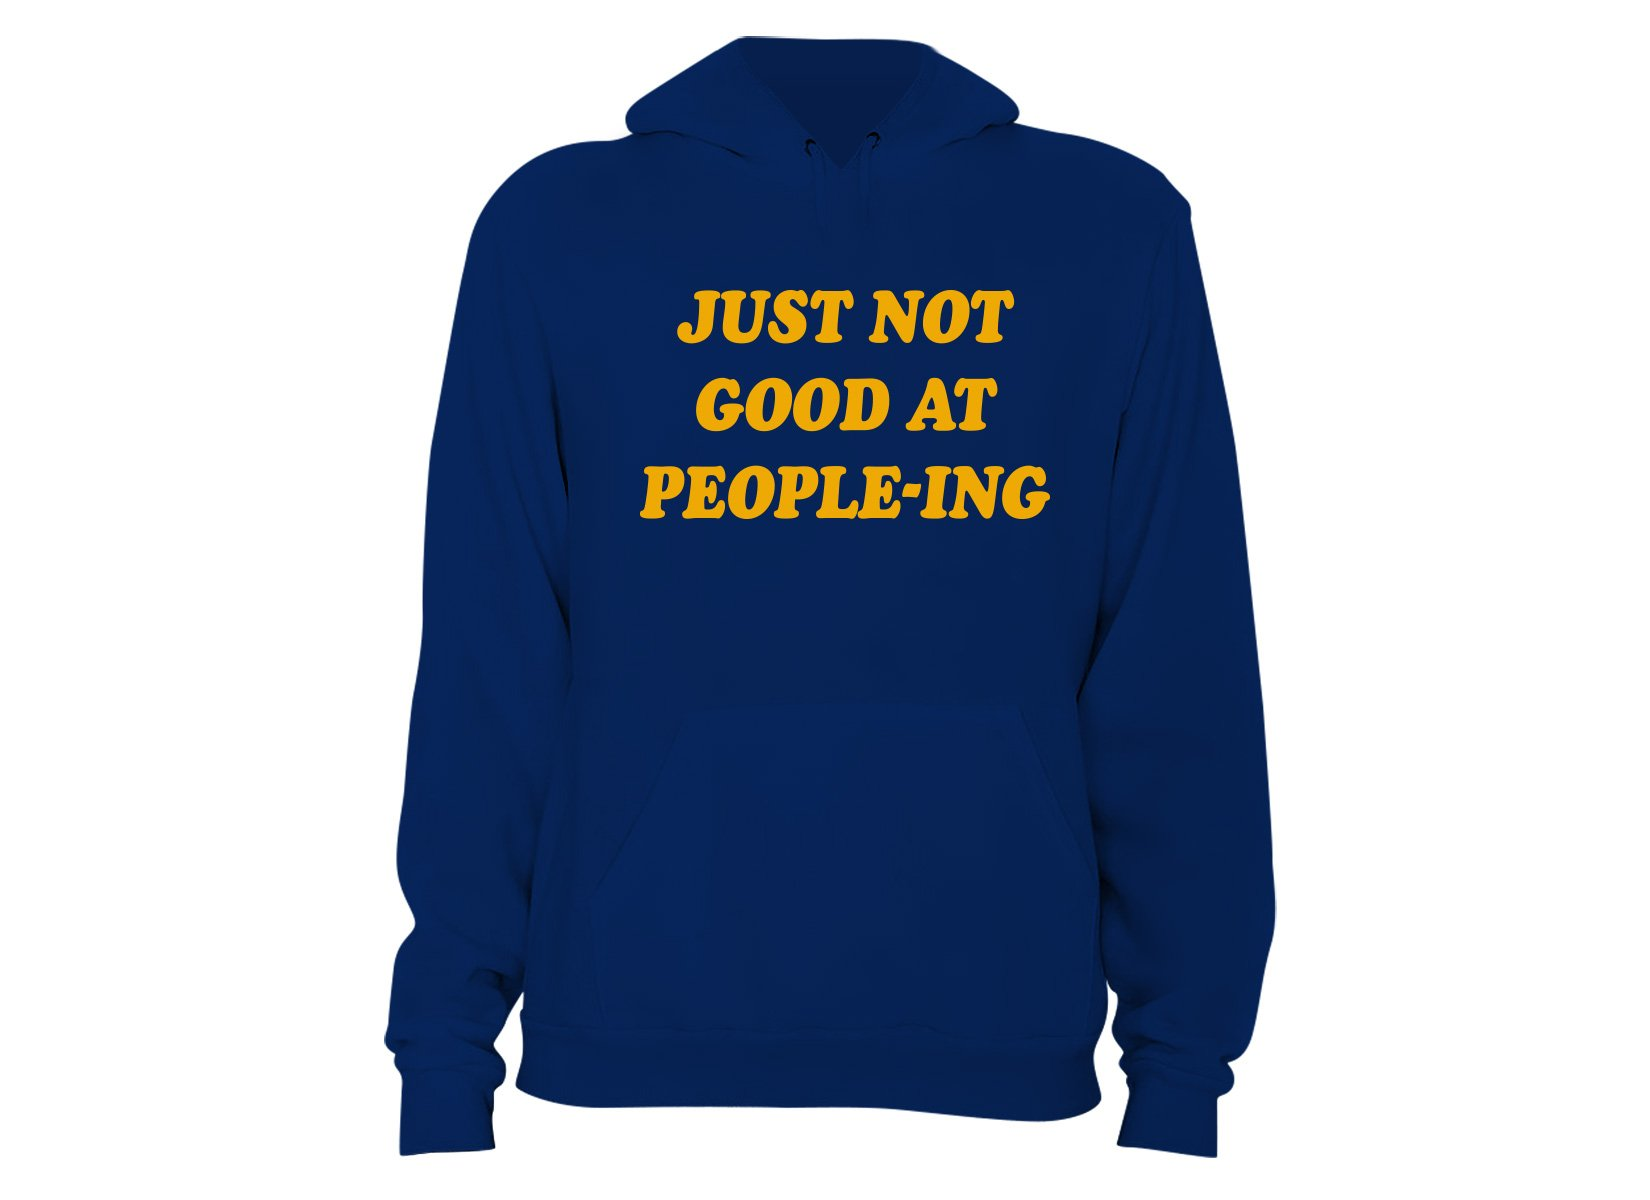 Just Not Good At People-ing on Hoodie